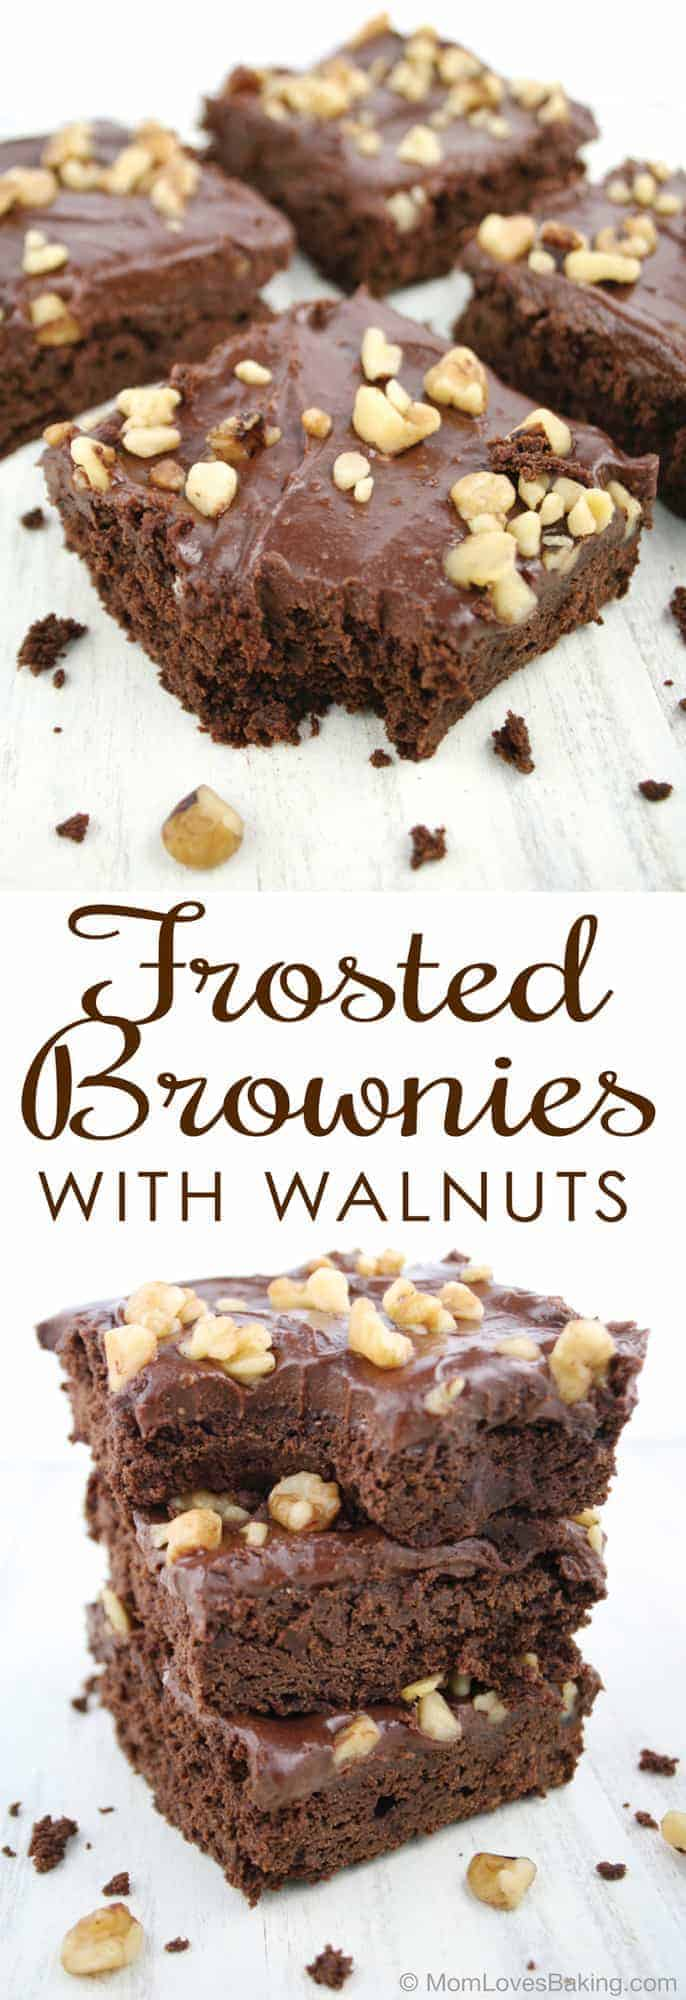 Frosted-Brownies-With-Walnuts-Long